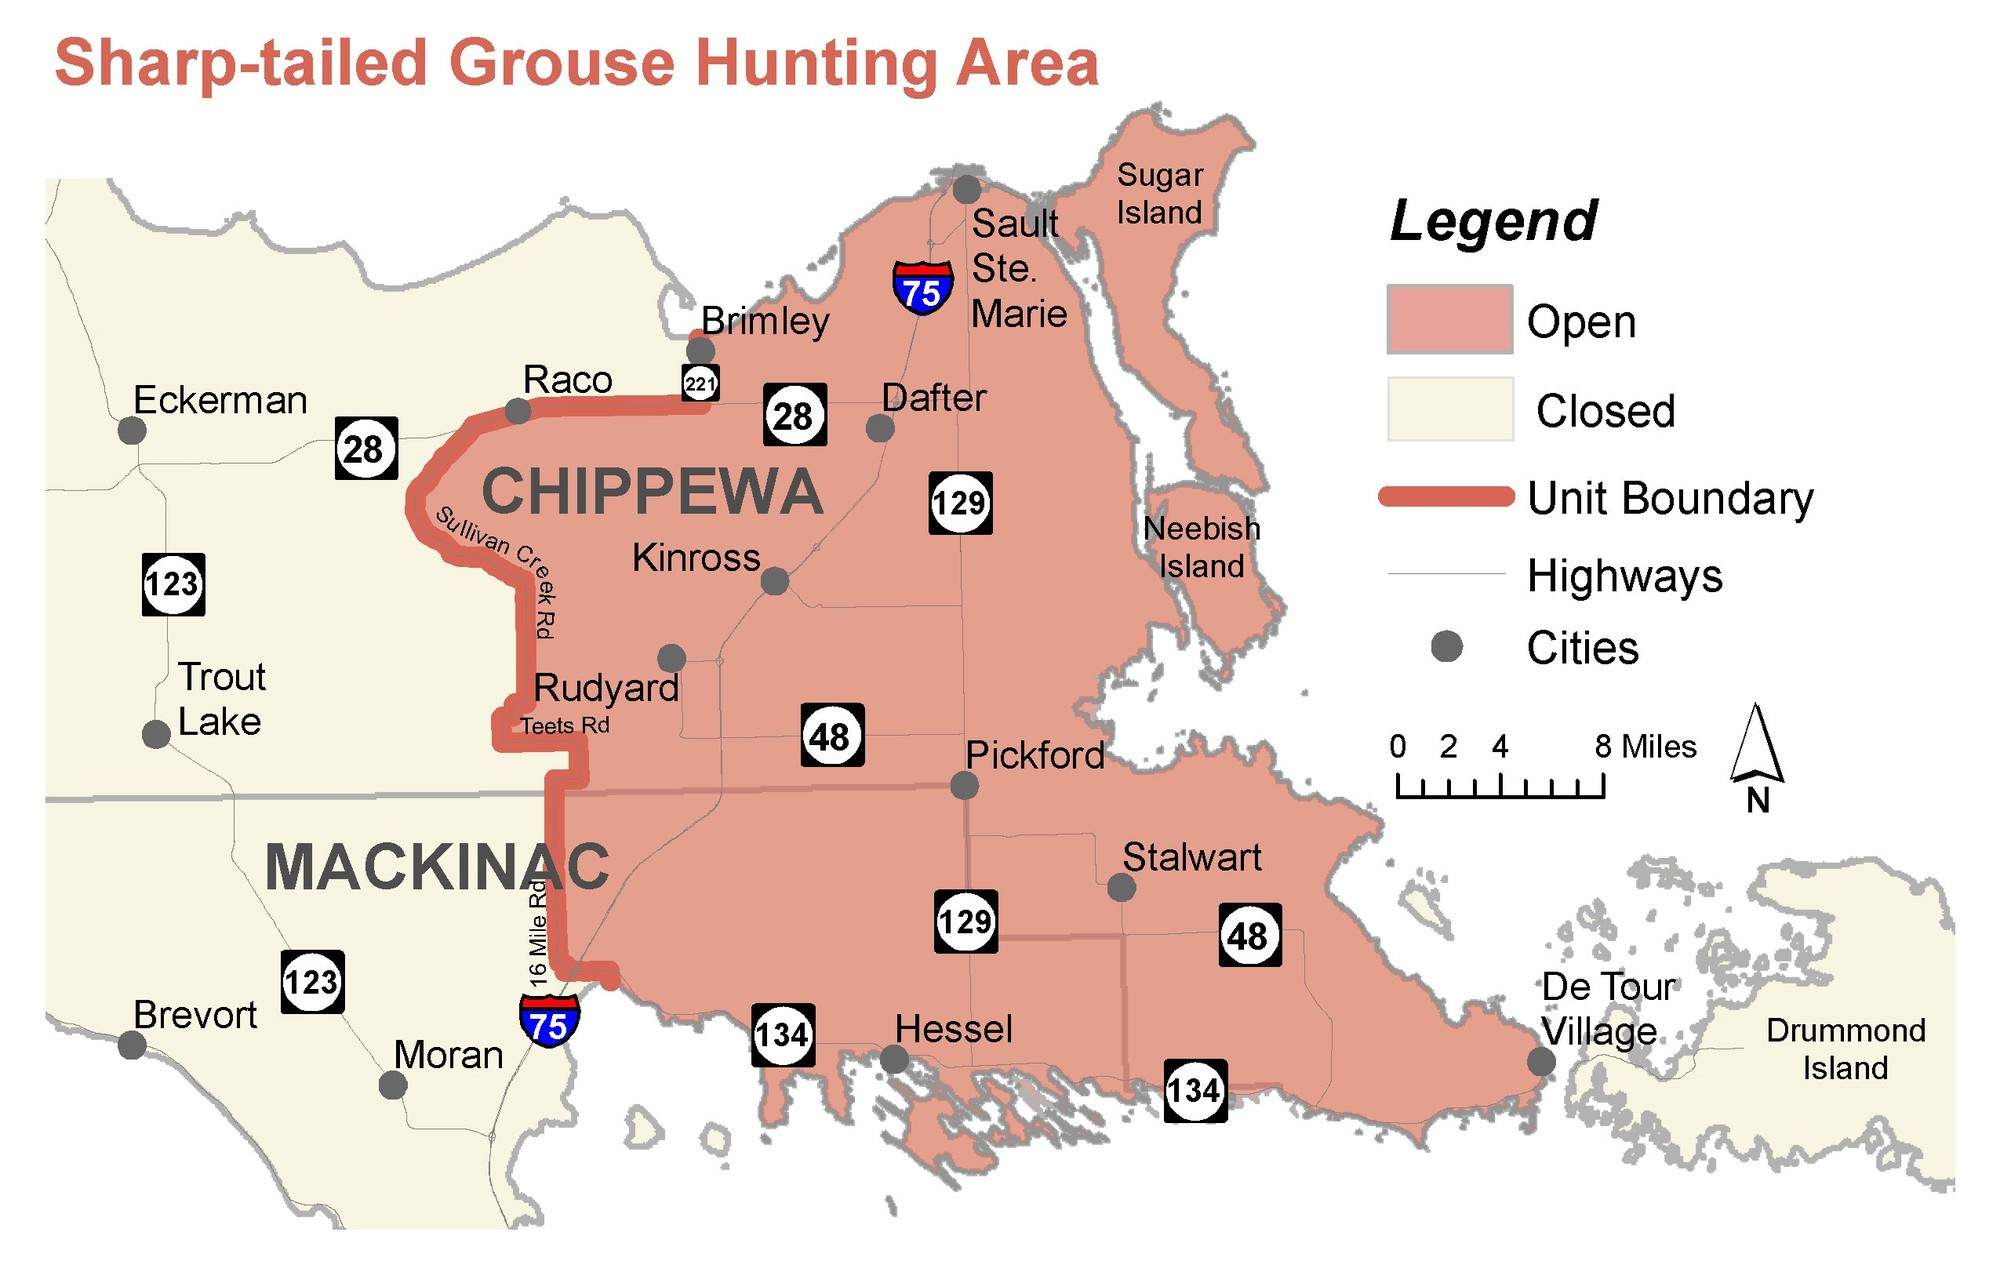 A map shows the sharp-tailed grouse hunting area in the eastern Upper Peninsula.